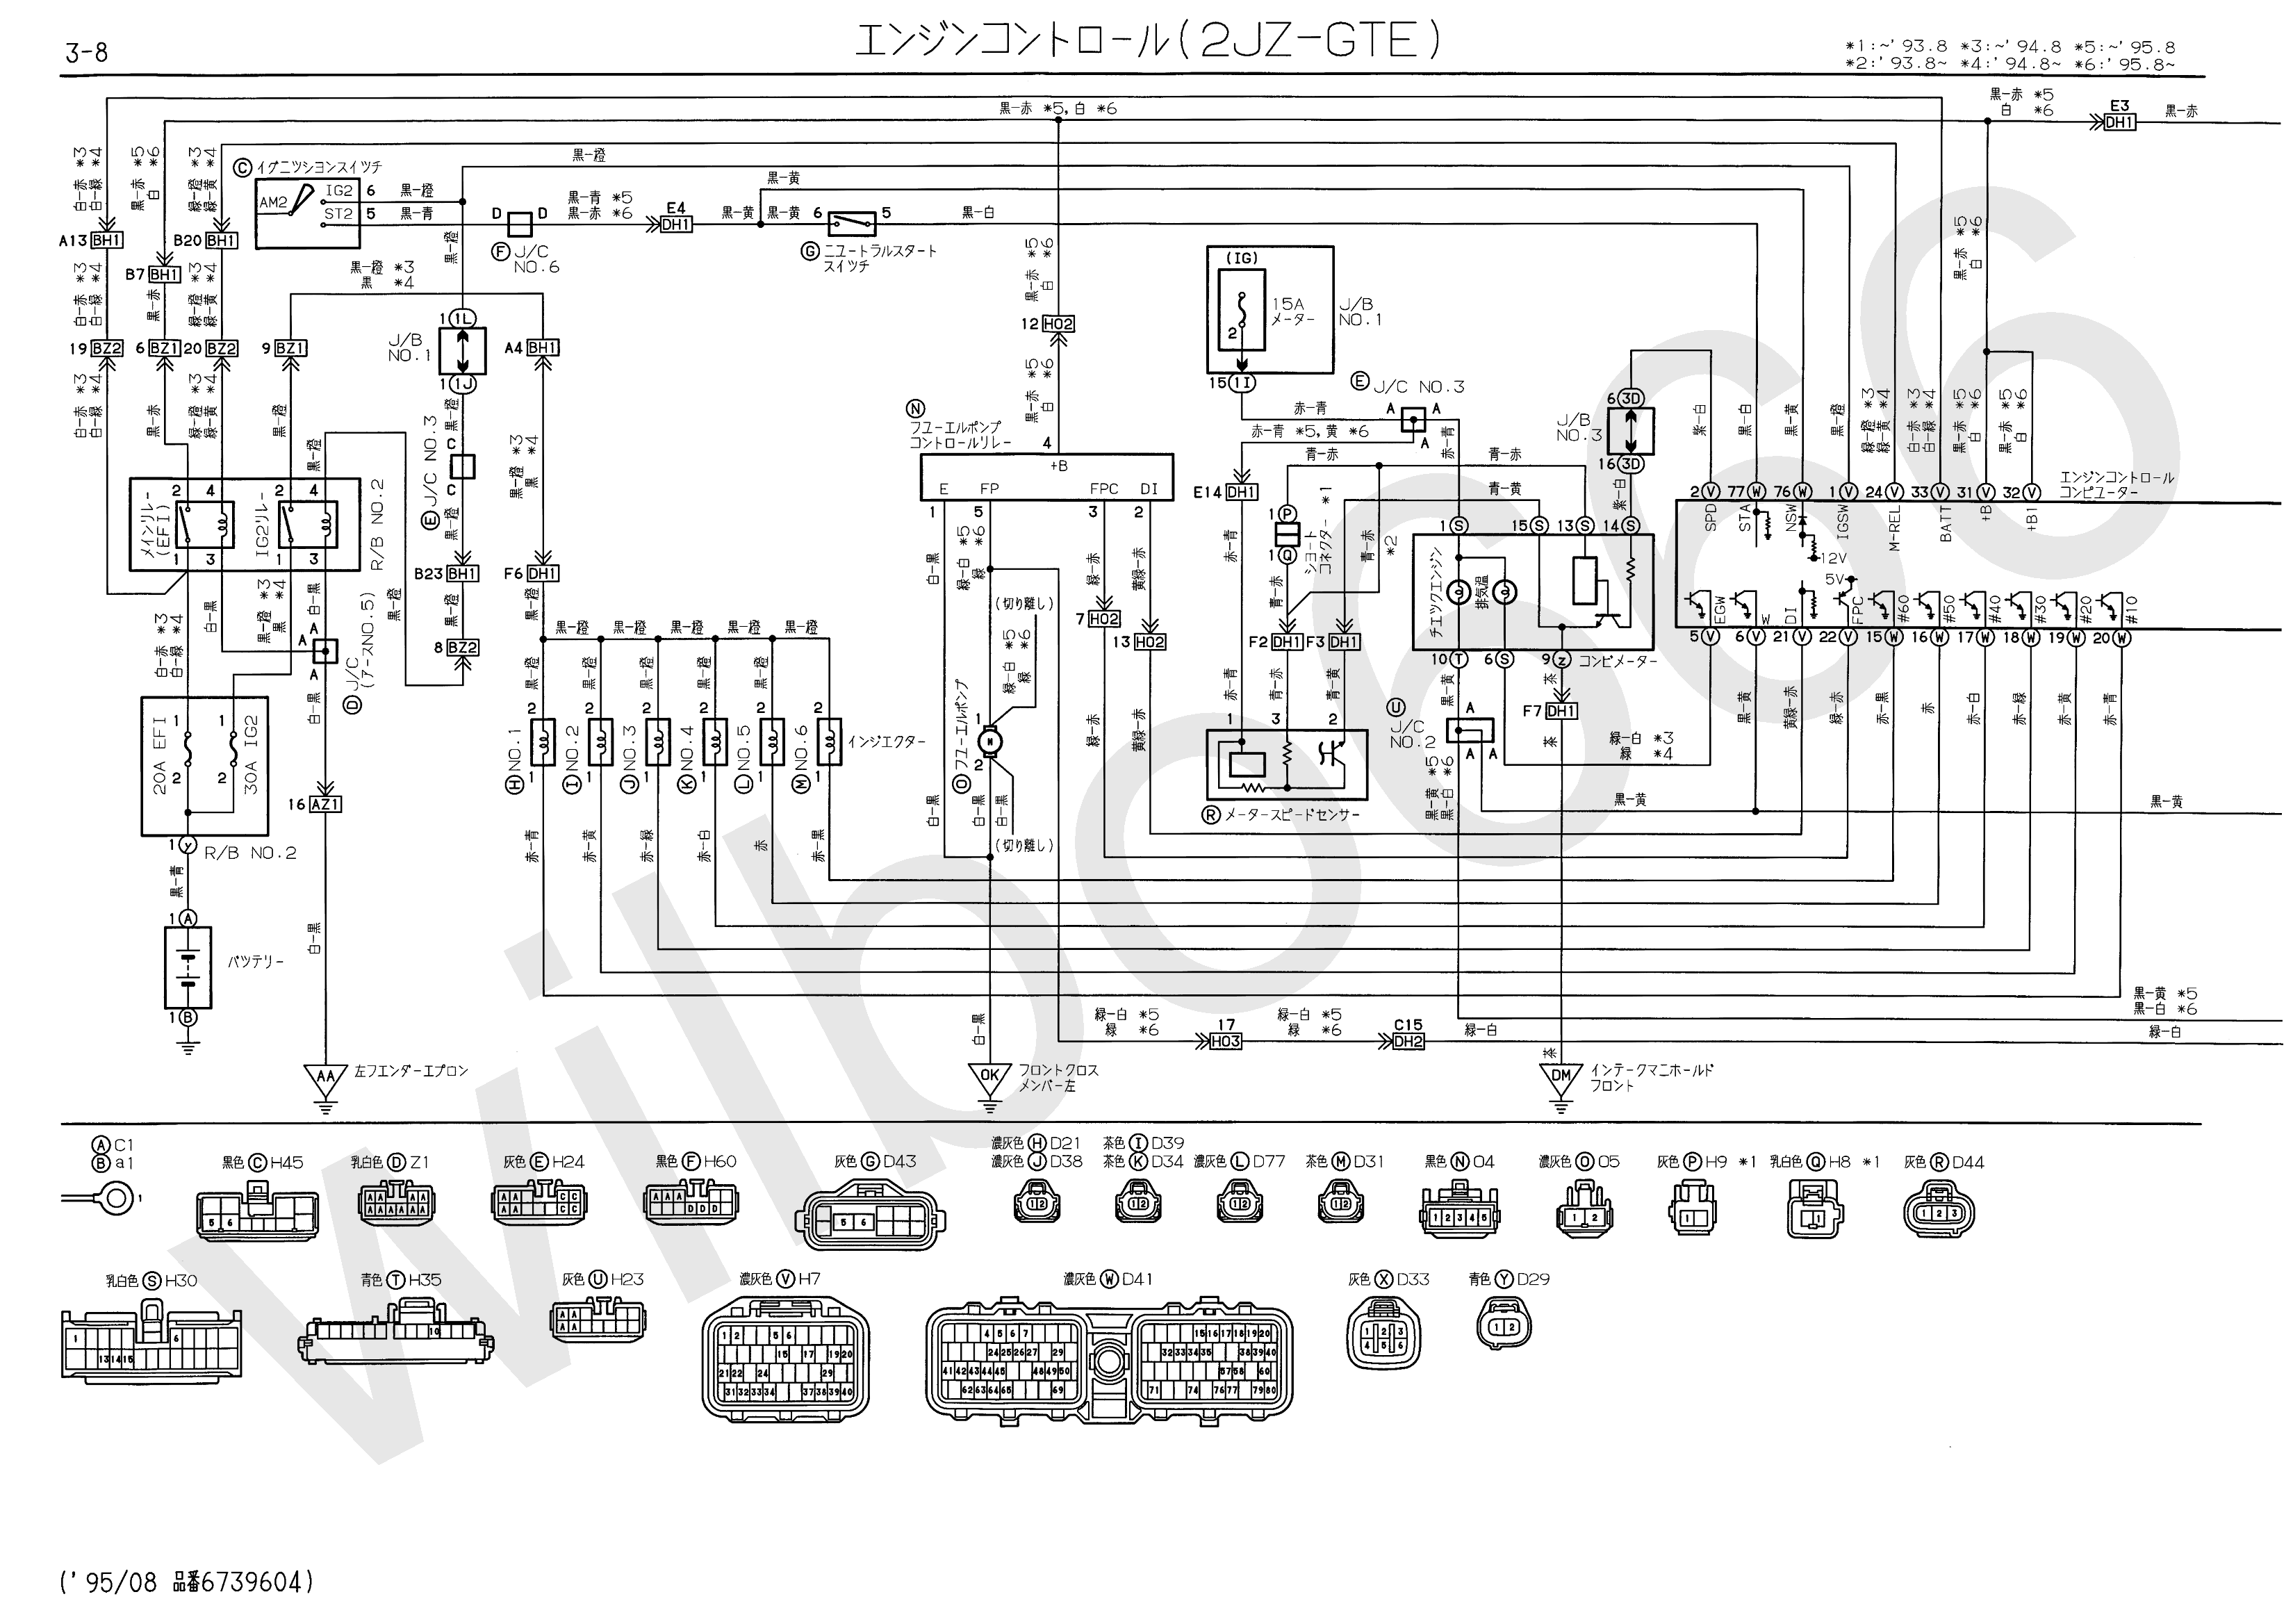 2JZ GTE 20JZS147 20Aristo 20Engine 20Wiring together with 683167 Repin Diagram 98 4r70w Into 96 A as well T24248742 Obd ii port honda civic also Ecu Pinout Diagram 302528 likewise Viewtopic. on 23 pin connector wiring diagram ford